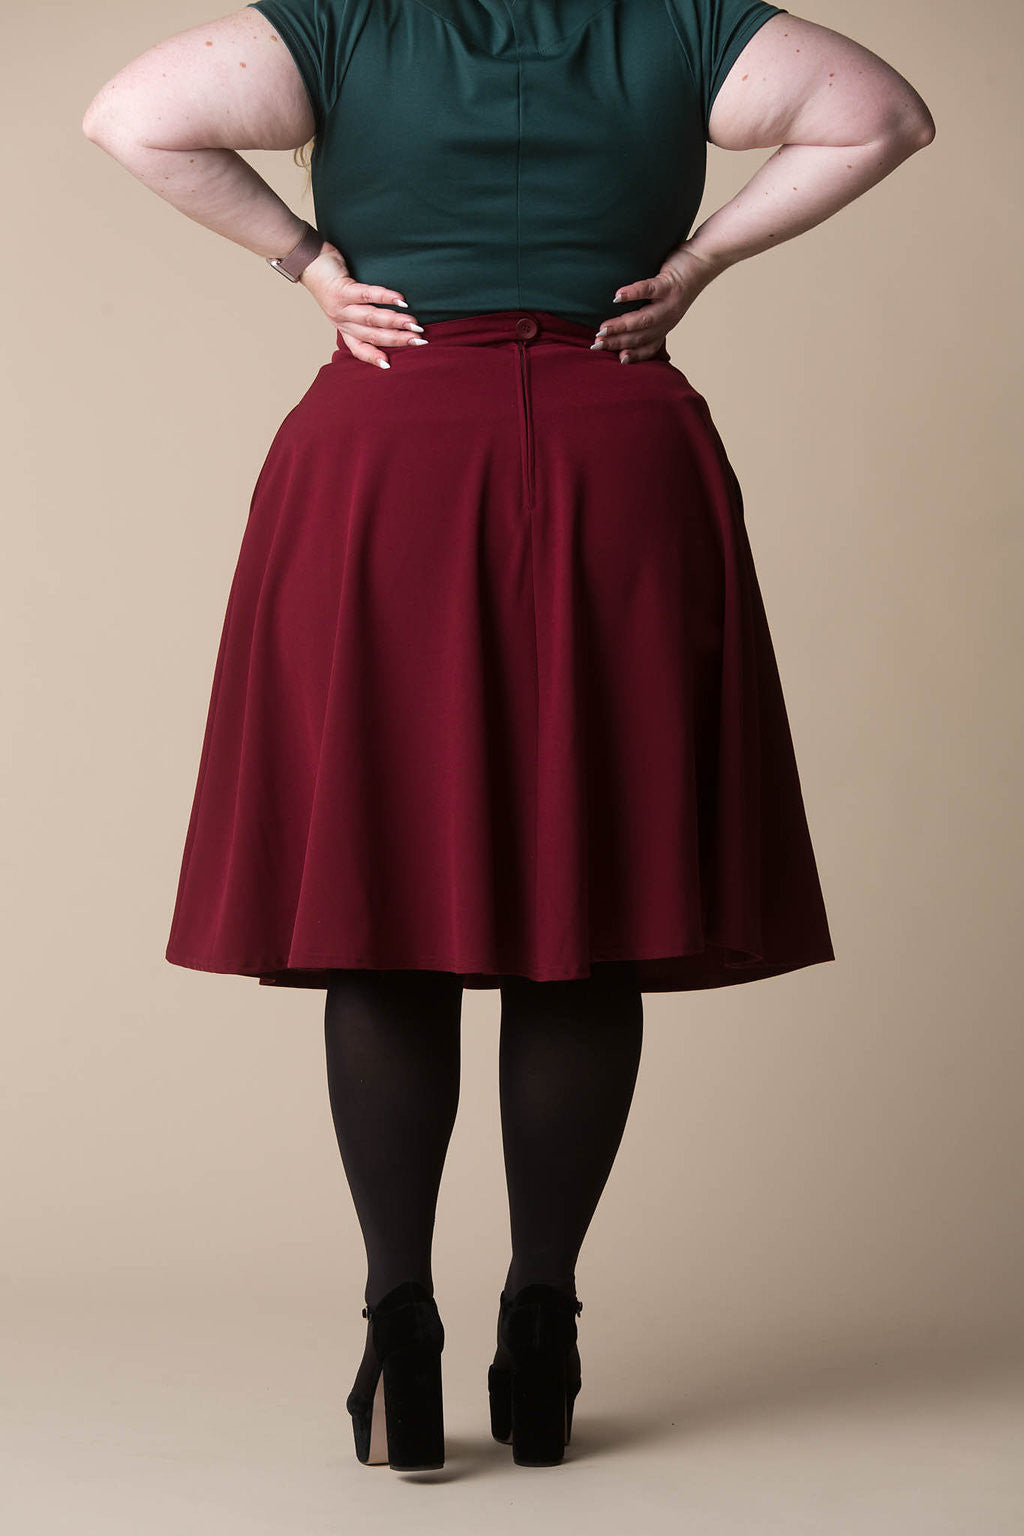 Tilda Skirt in Maroon